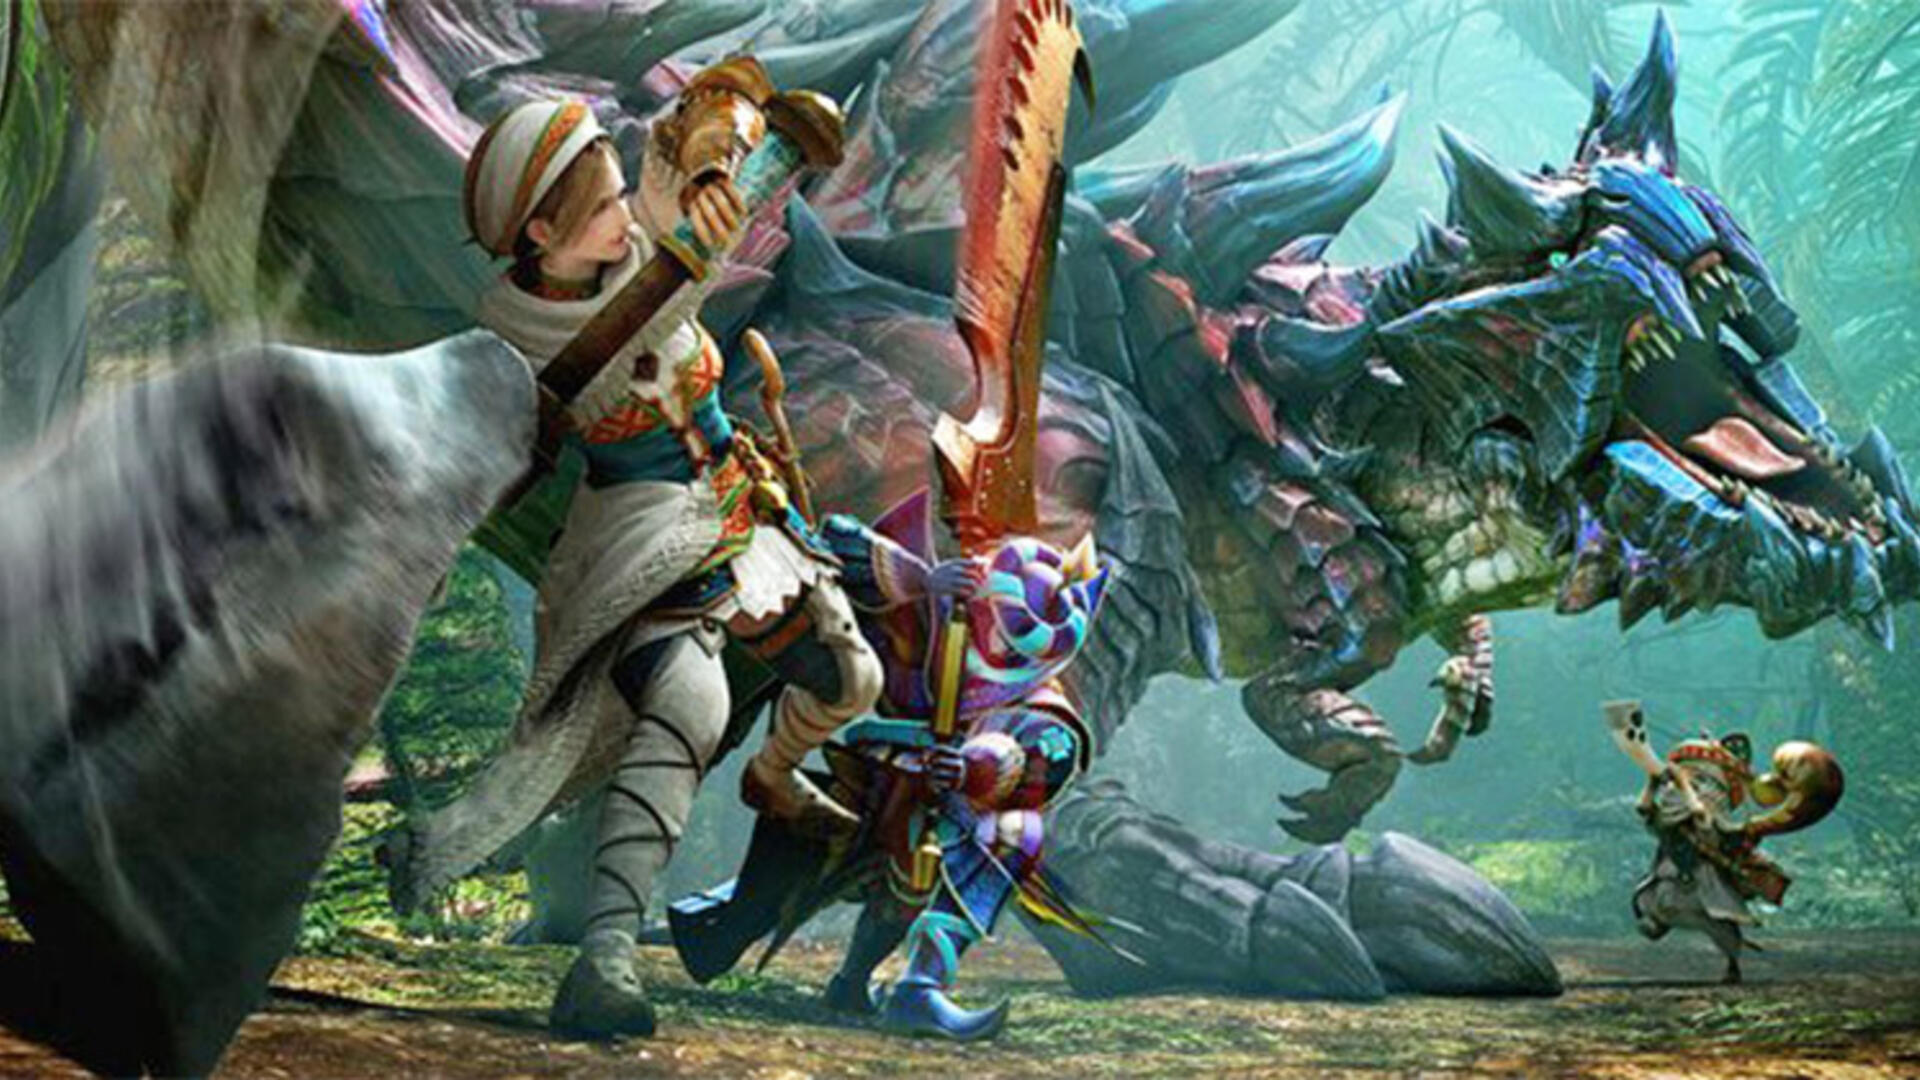 Five Ways Monster Hunter Could Change for the Better